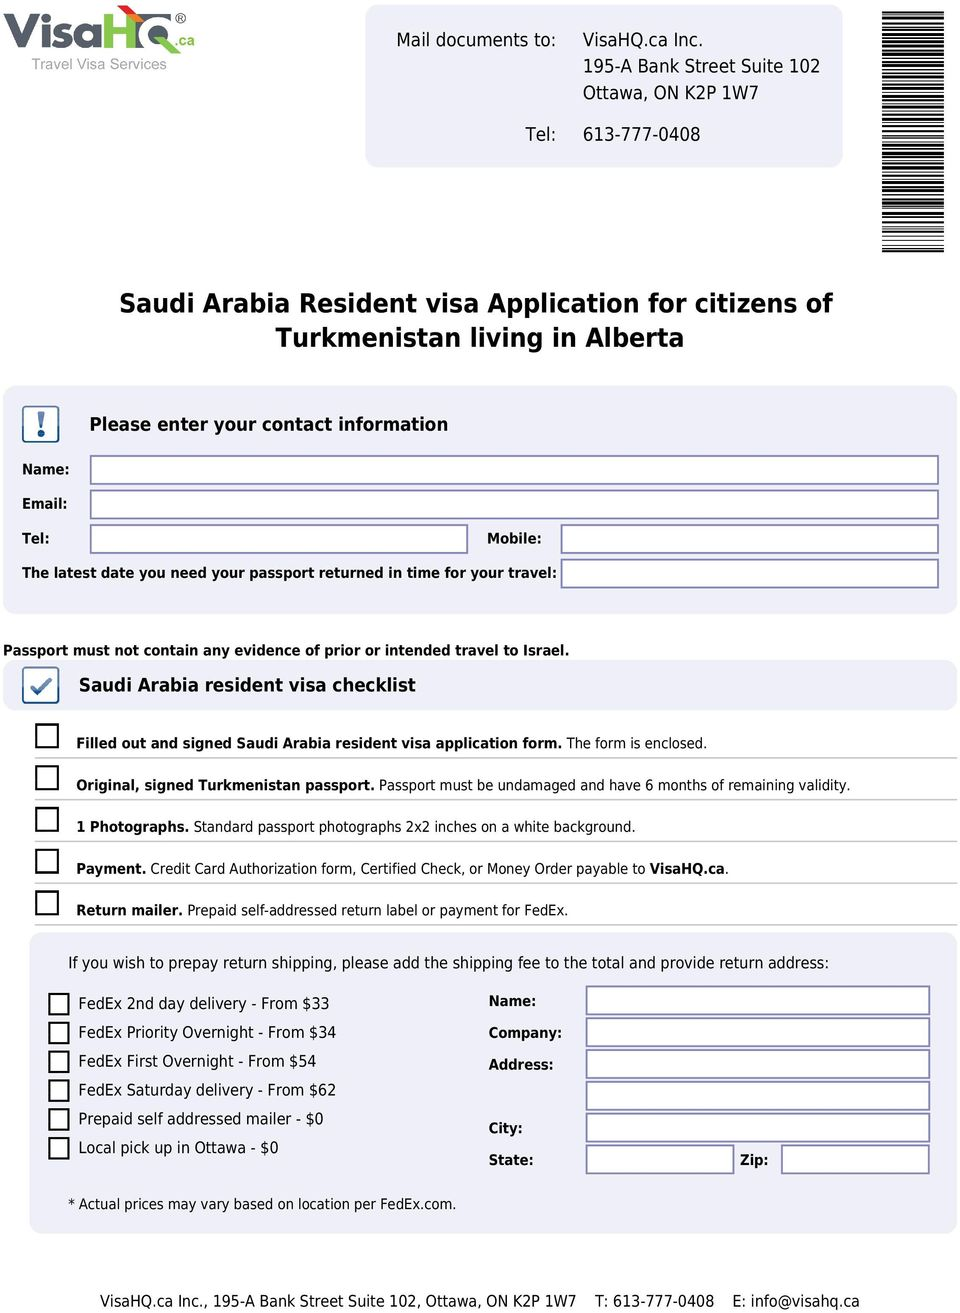 Saudi Arabia resident visa checklist Filled out and signed Saudi Arabia resident visa application form. The form is enclosed. Original, signed Turkmenistan passport.